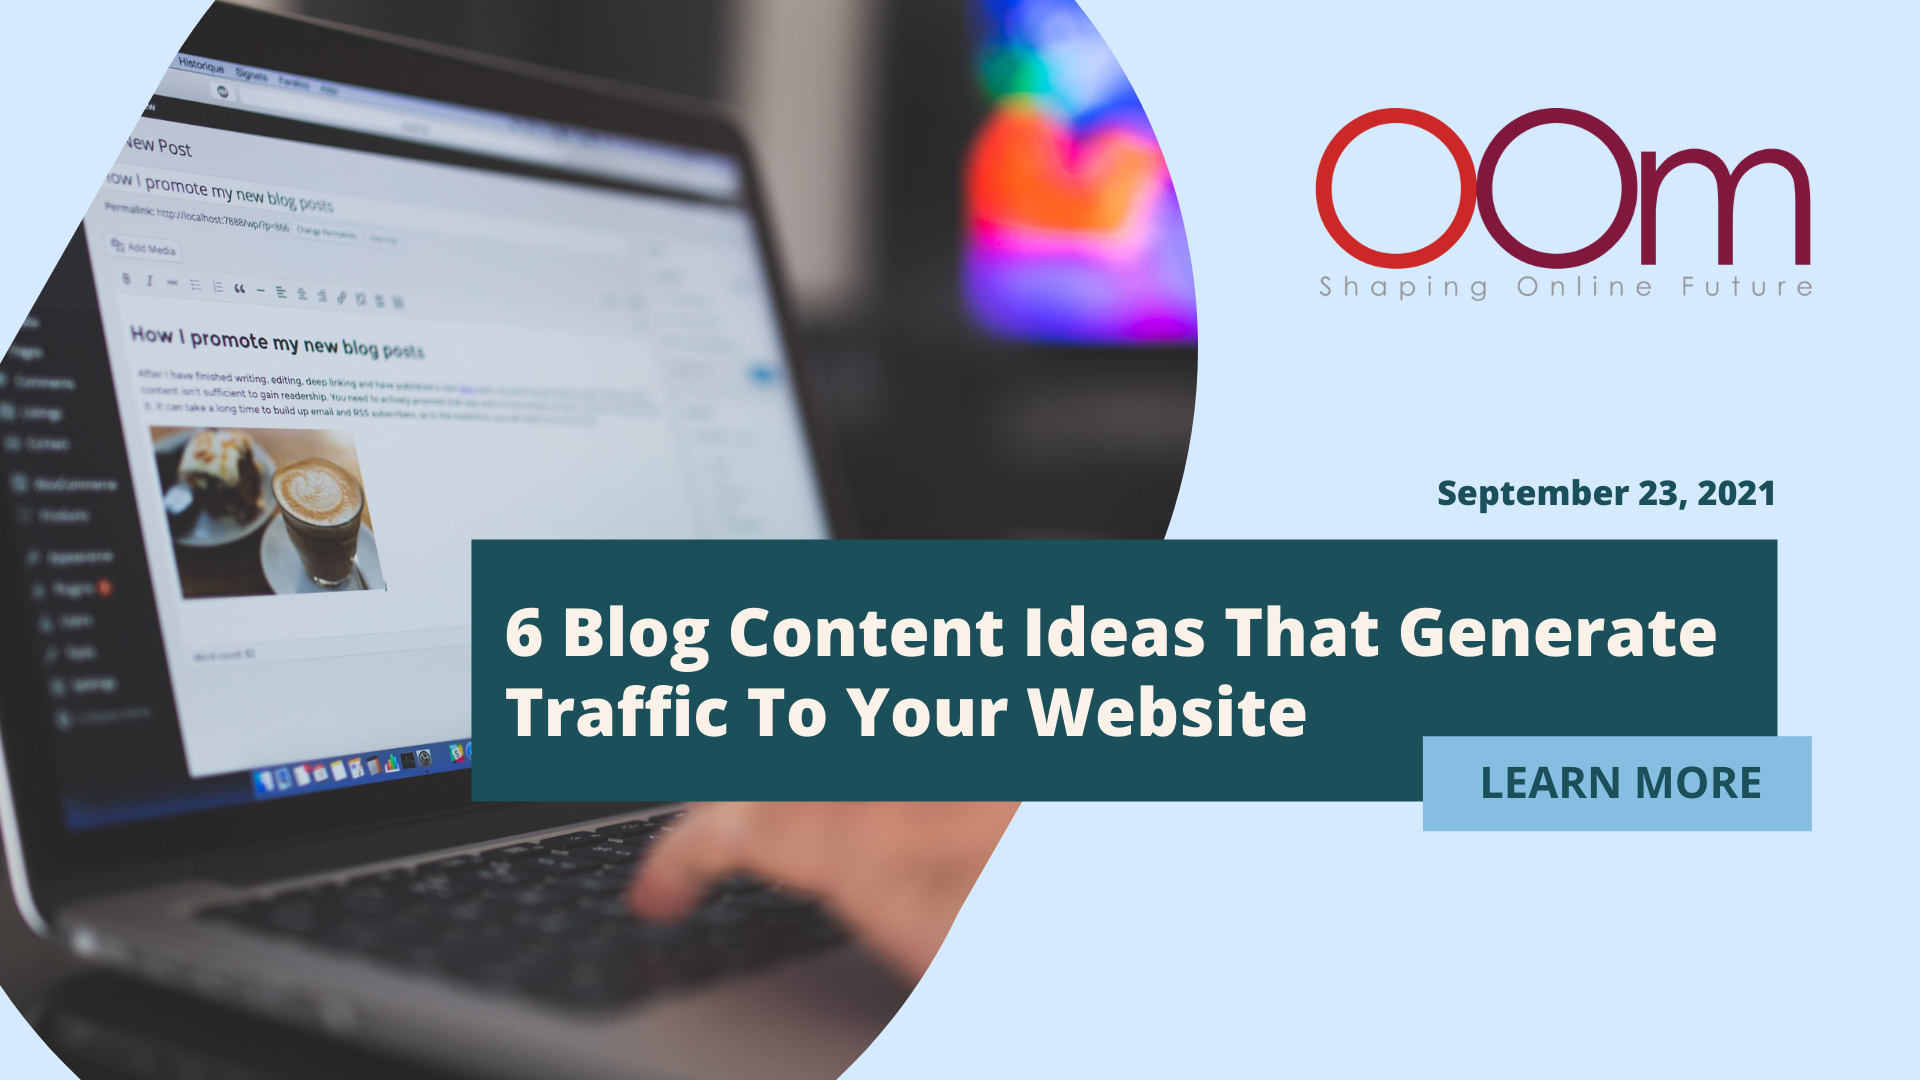 6 Blog Content Ideas That Generate Traffic To Your Website